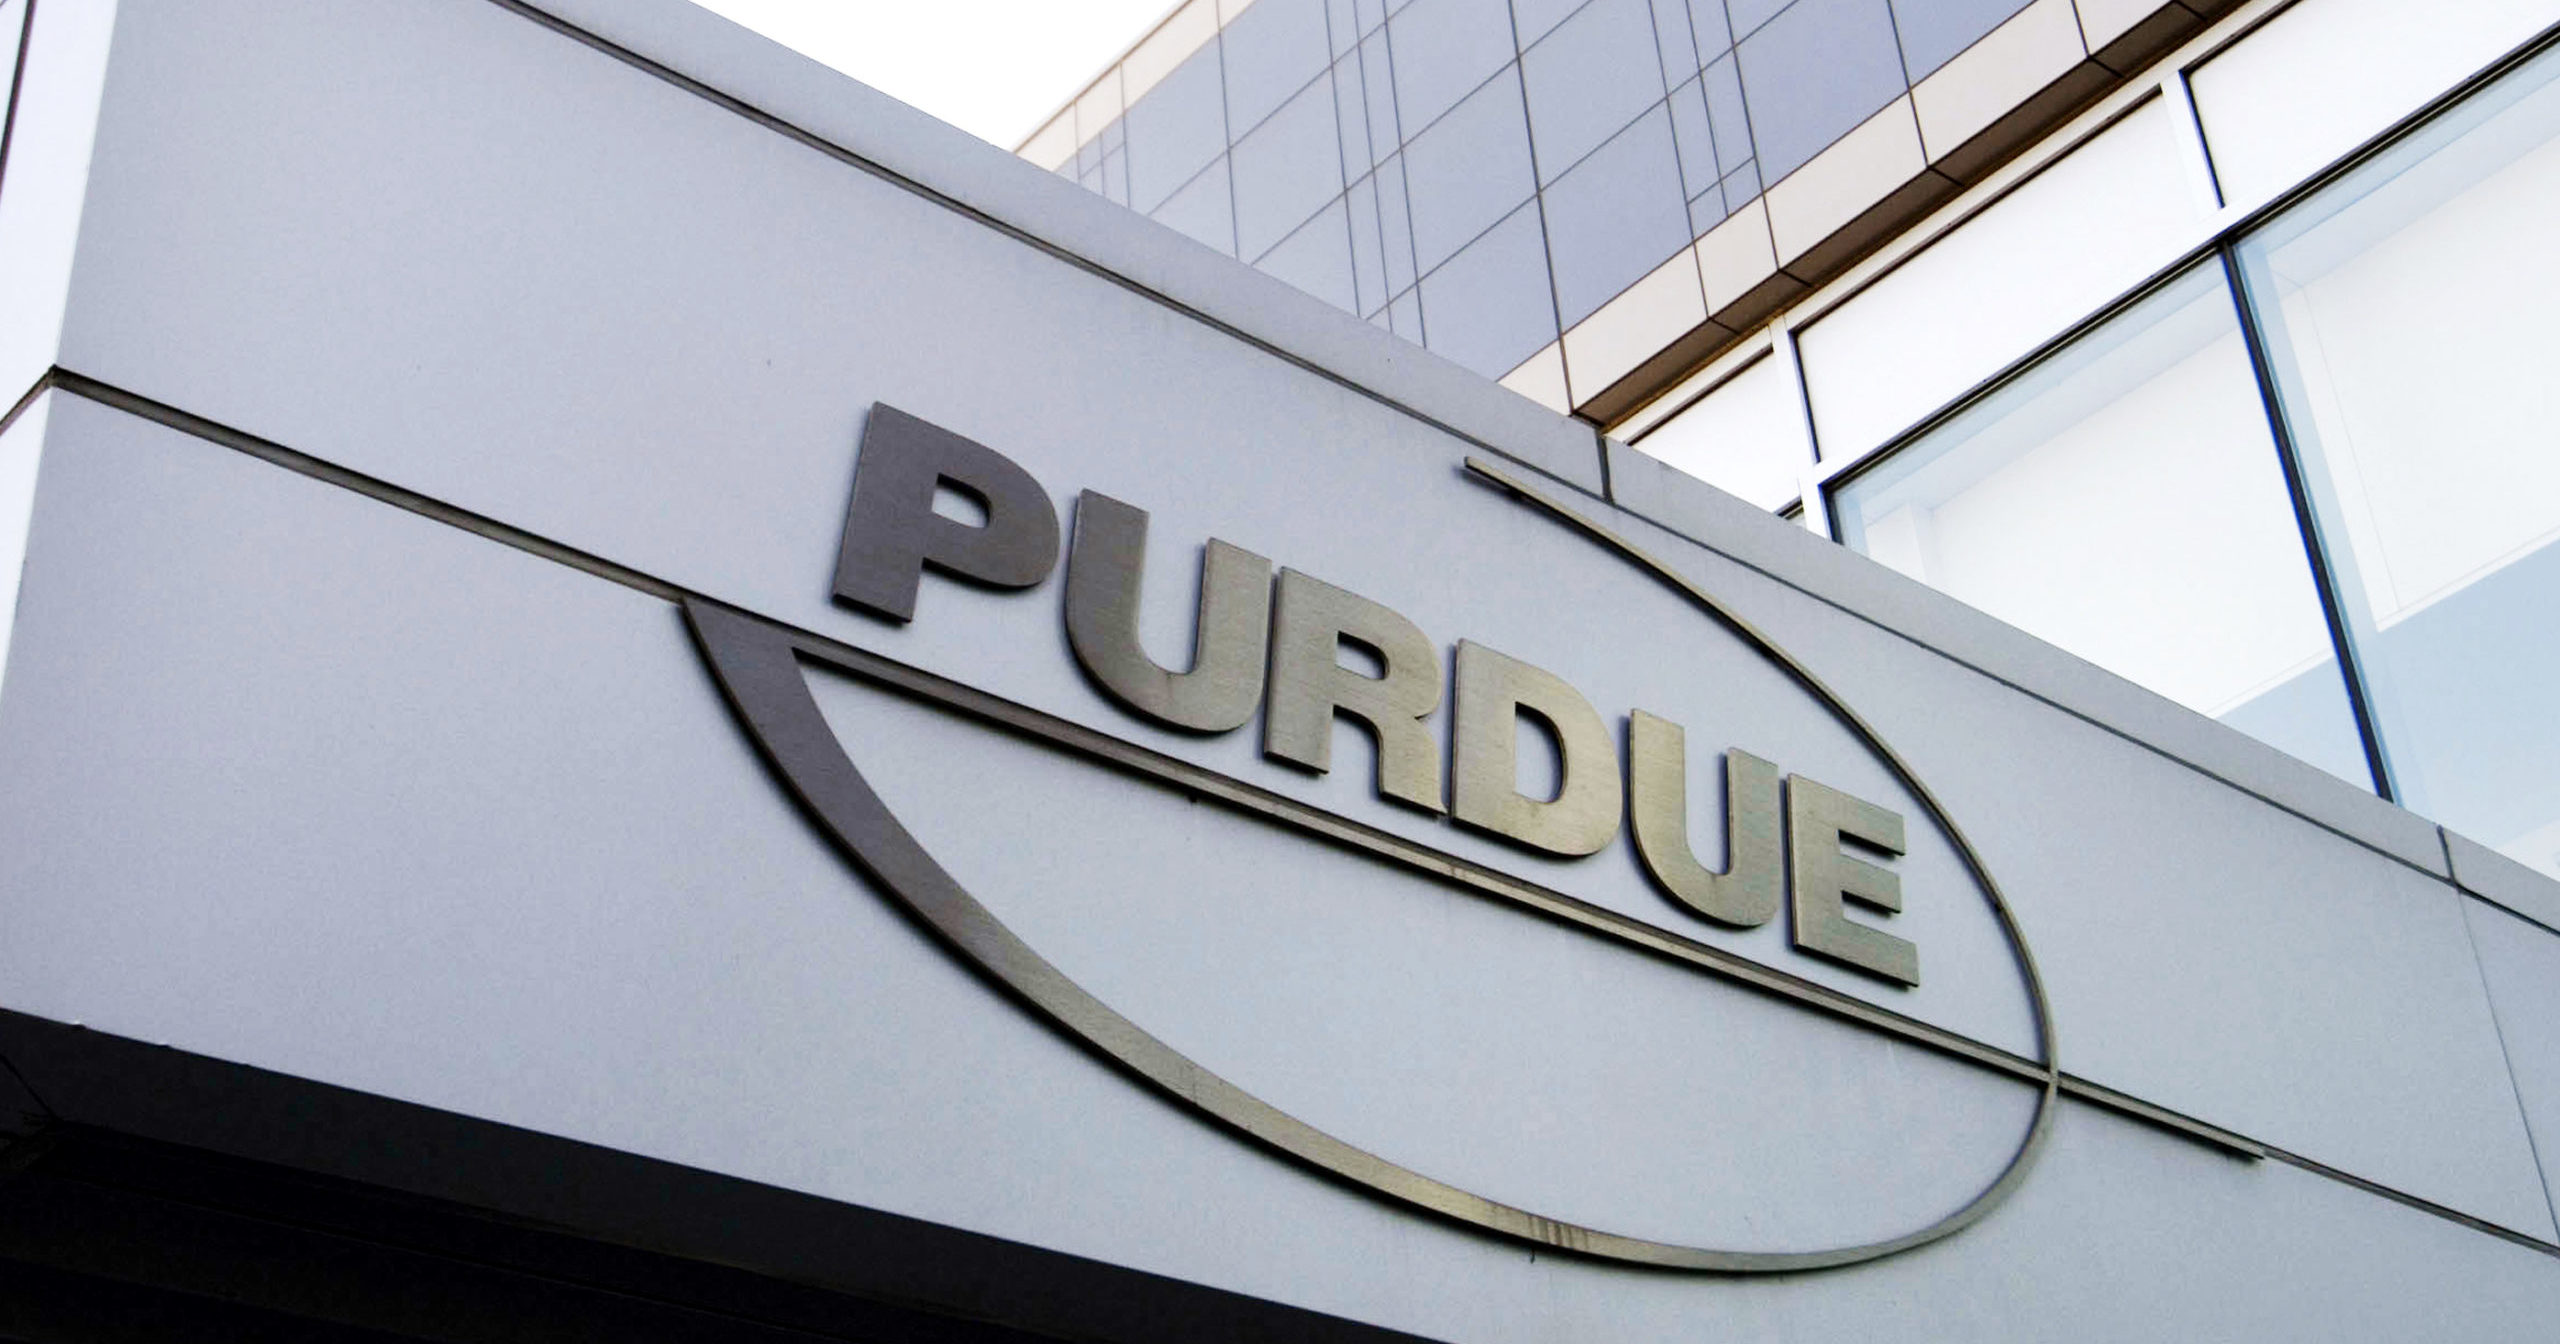 This May 8, 2007, file photo shows the Purdue Pharma logo at its offices in Stamford, Connecticut. Purdue Pharma, the company that makes OxyContin, the powerful prescription painkiller that experts say helped touch off an opioid epidemic, will plead guilty to three federal criminal charges as part of a settlement of over $8 billion, Justice Department officials told The Associated Press.